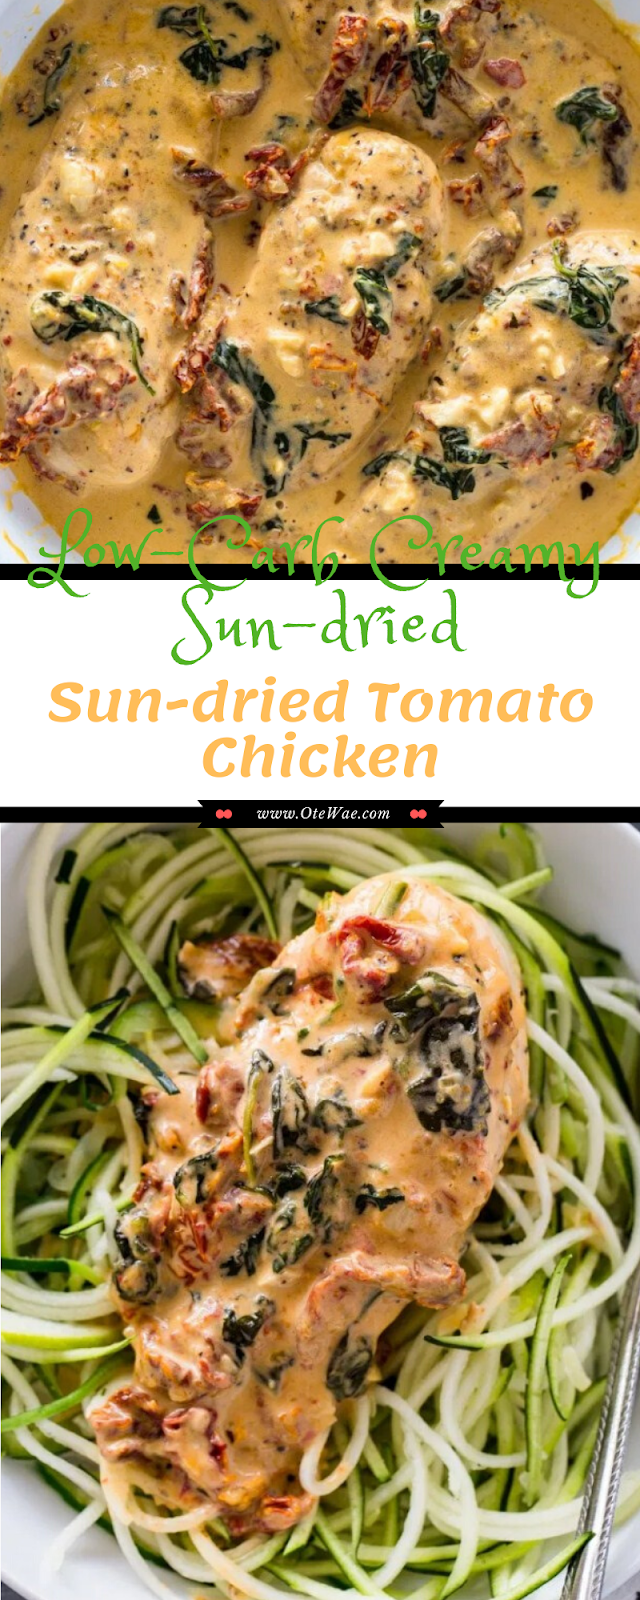 Low-Carb Creamy Sun-dried Tomato Chicken